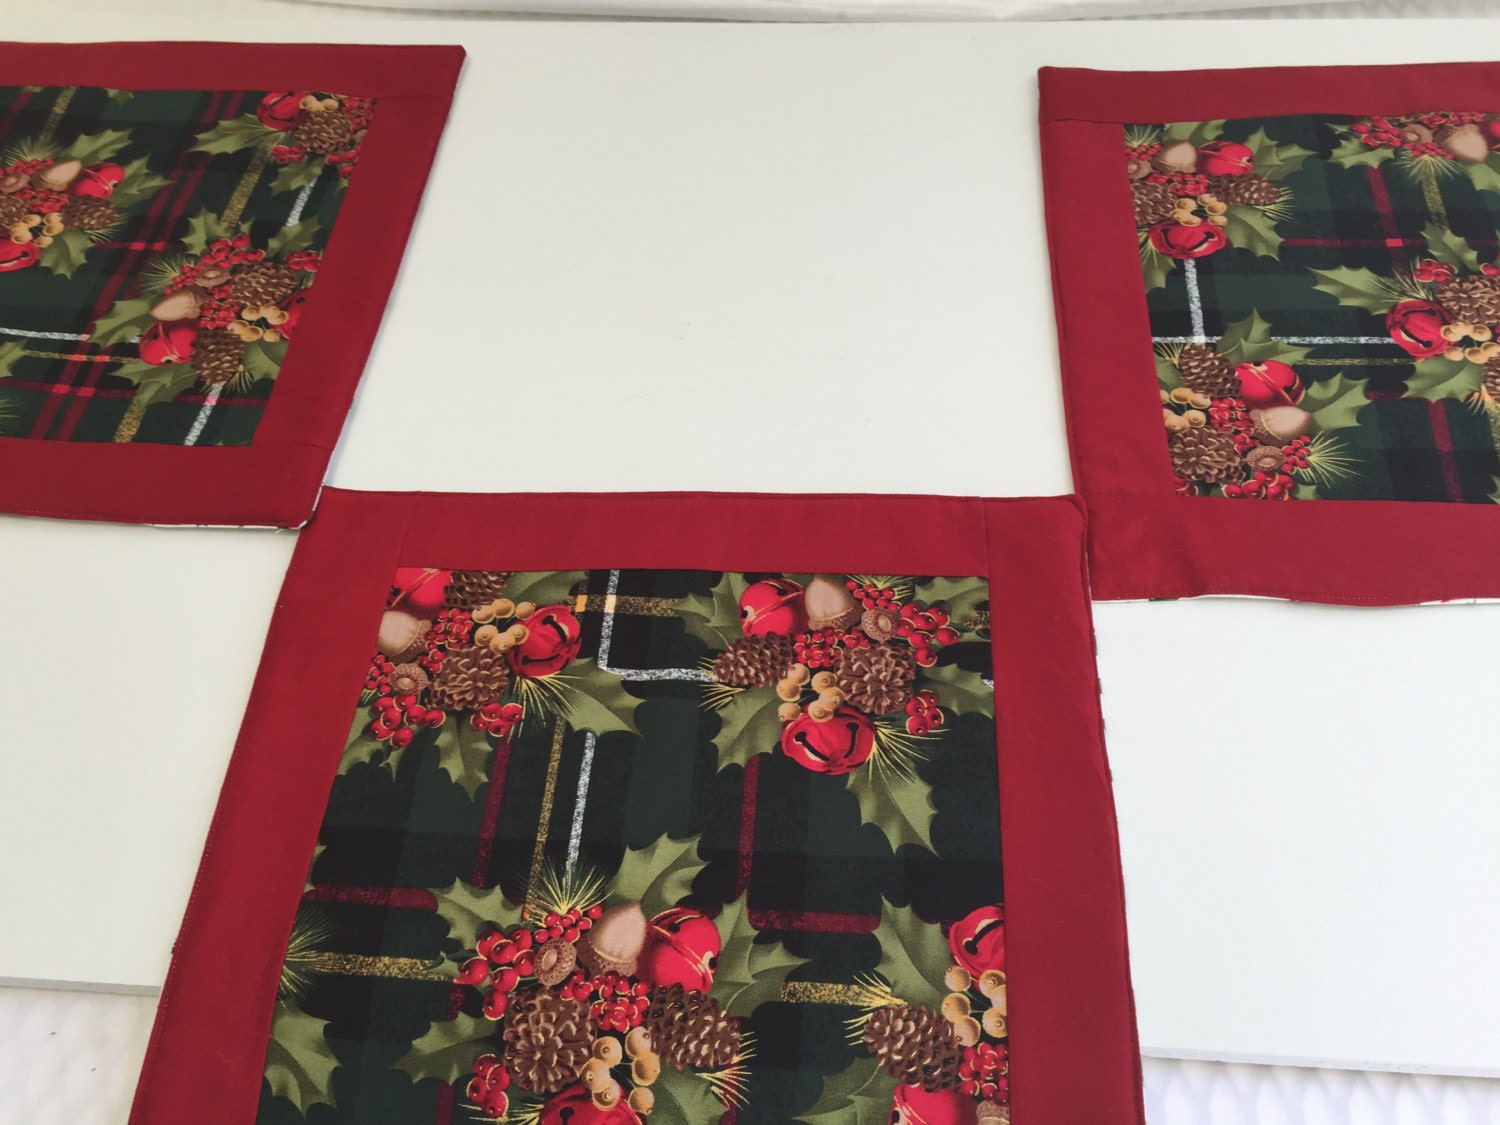 Square Placemats, Red Place Mats, Reversible Placemats, Square Table  Topper, Square Red Placemats, Christmas Placemats, Christmas Decor